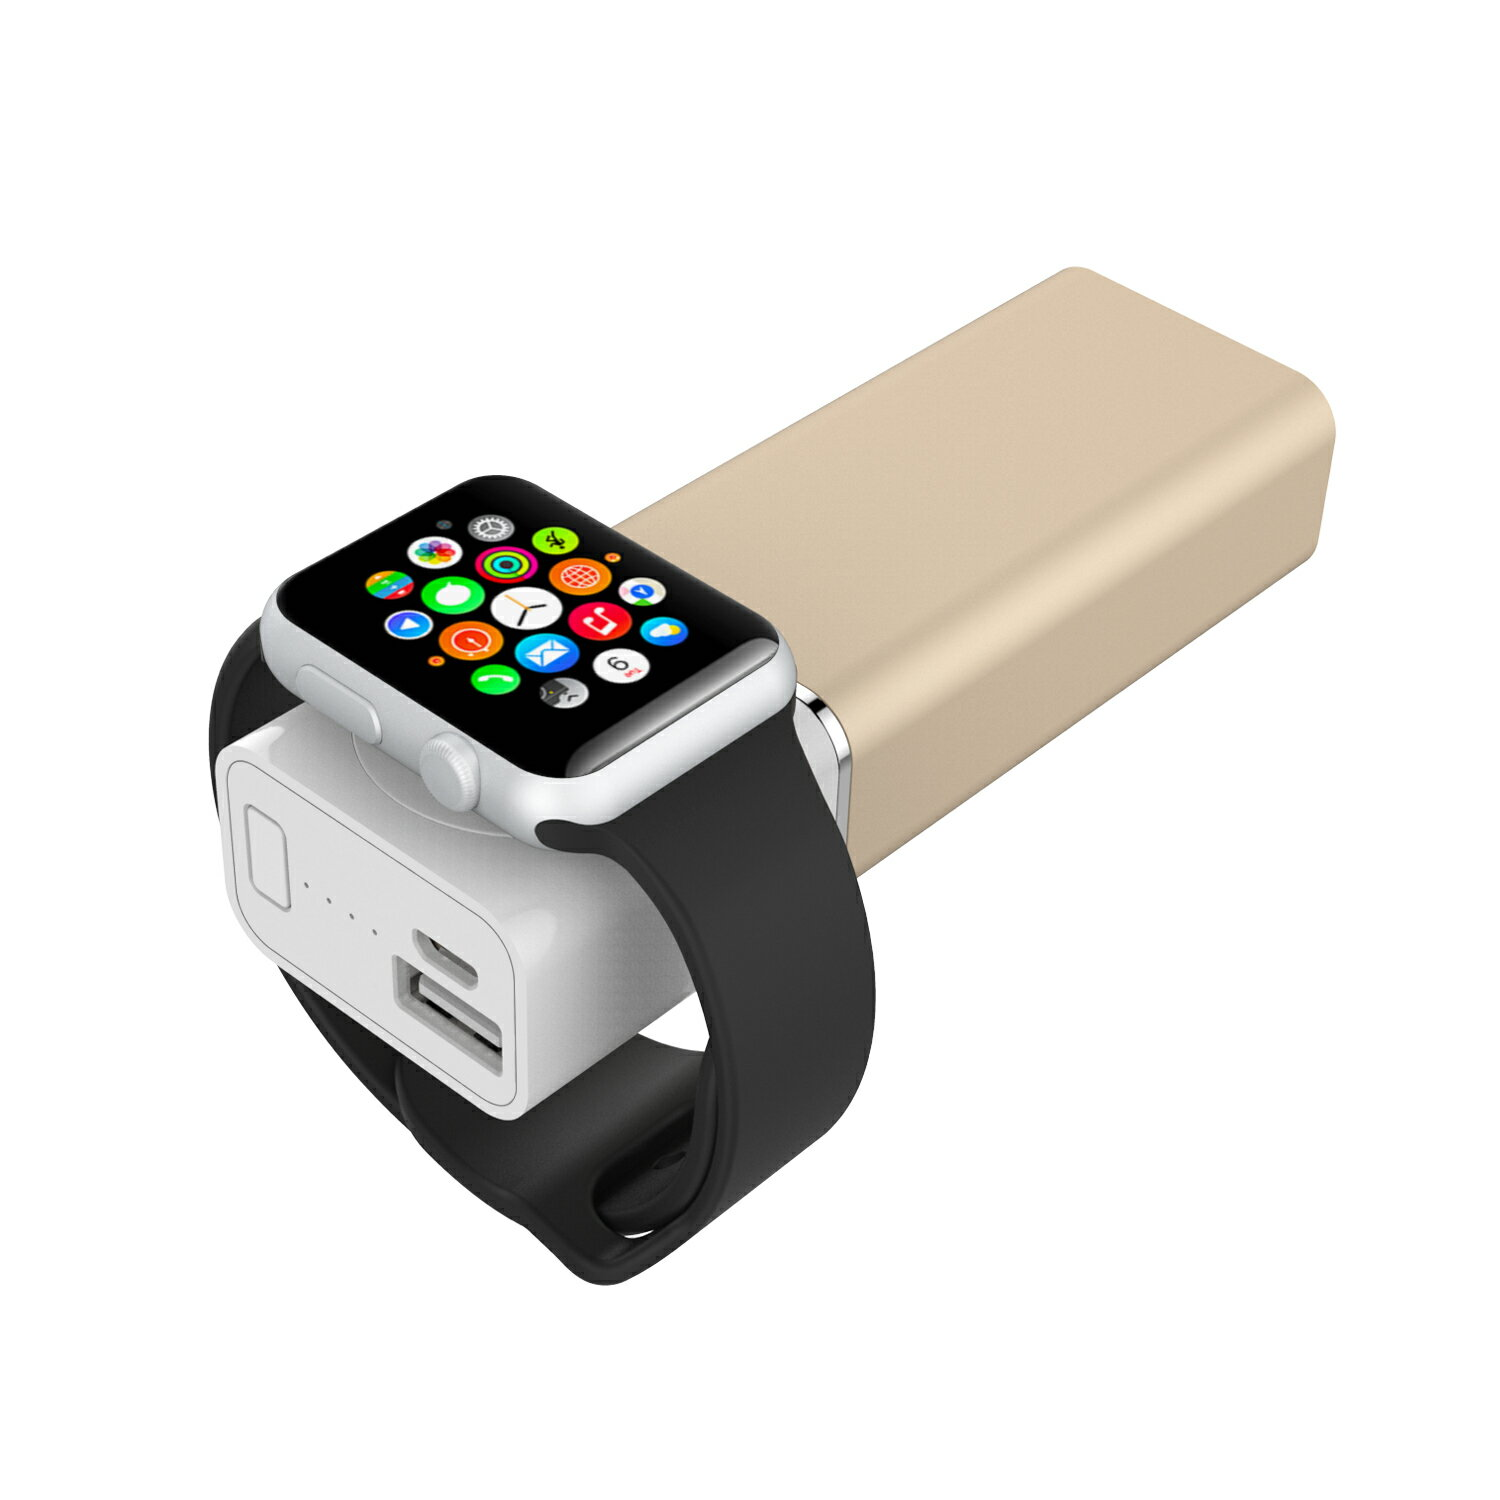 Element Works Dual USB Portable Charger And External Battery Pack for Apple Watch, iPhone, and Other Smartphones-Apple MFI Certified 8